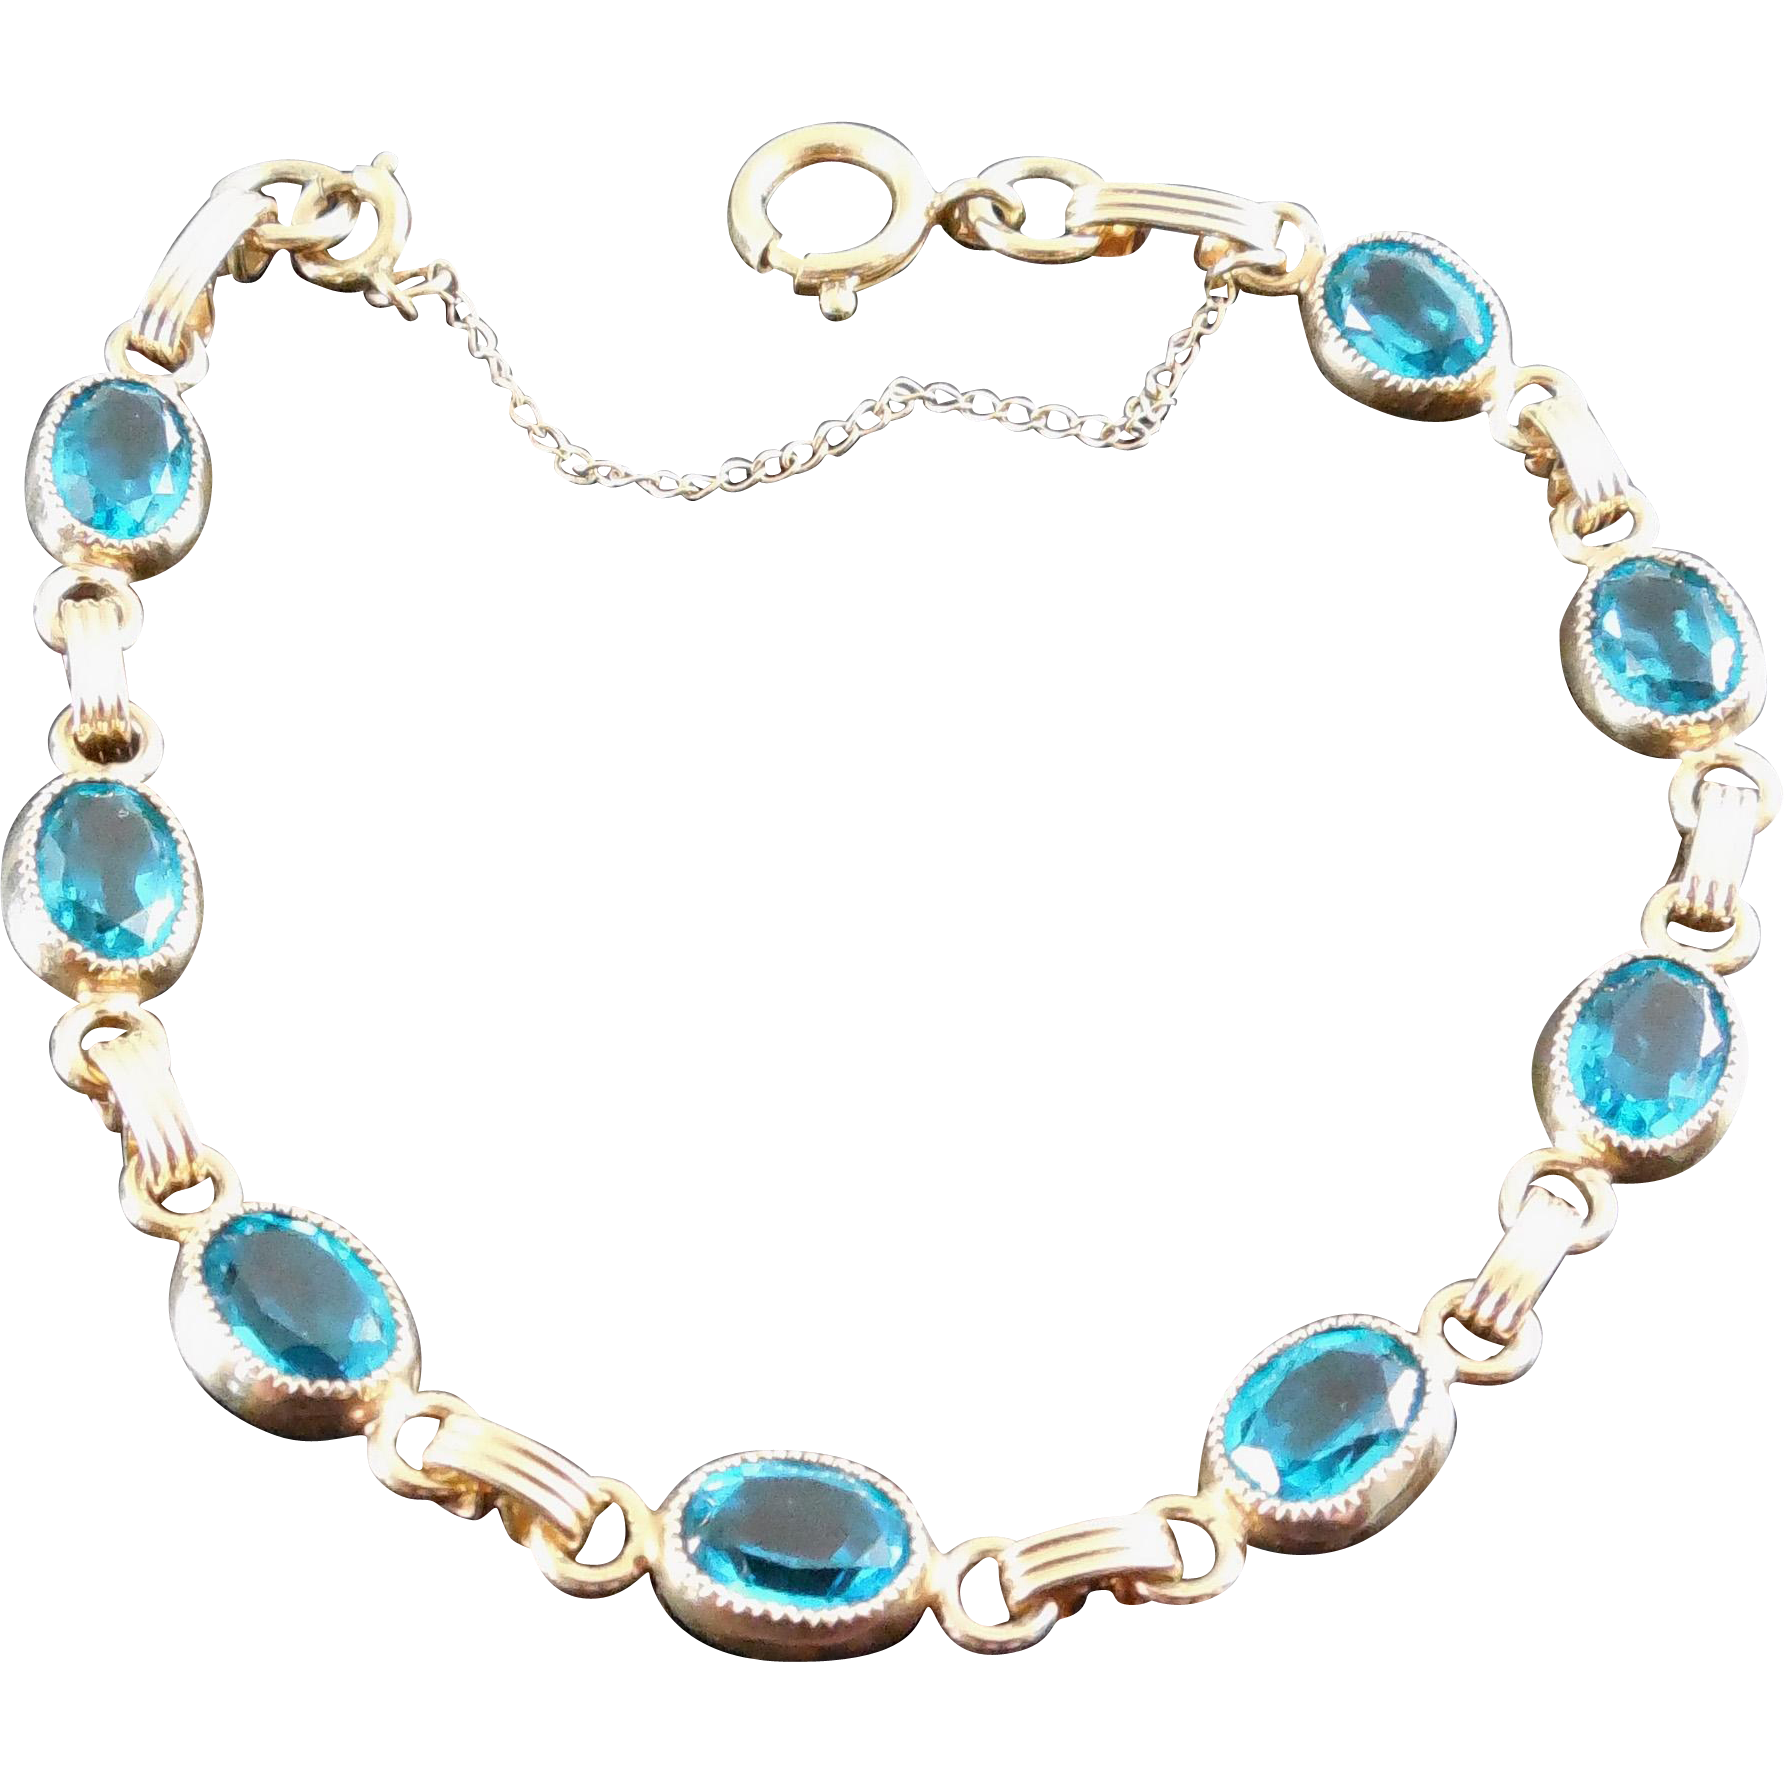 Lovely Gold Filled Bracelet with Teal Crystal Stones - Signed & Safety Chain